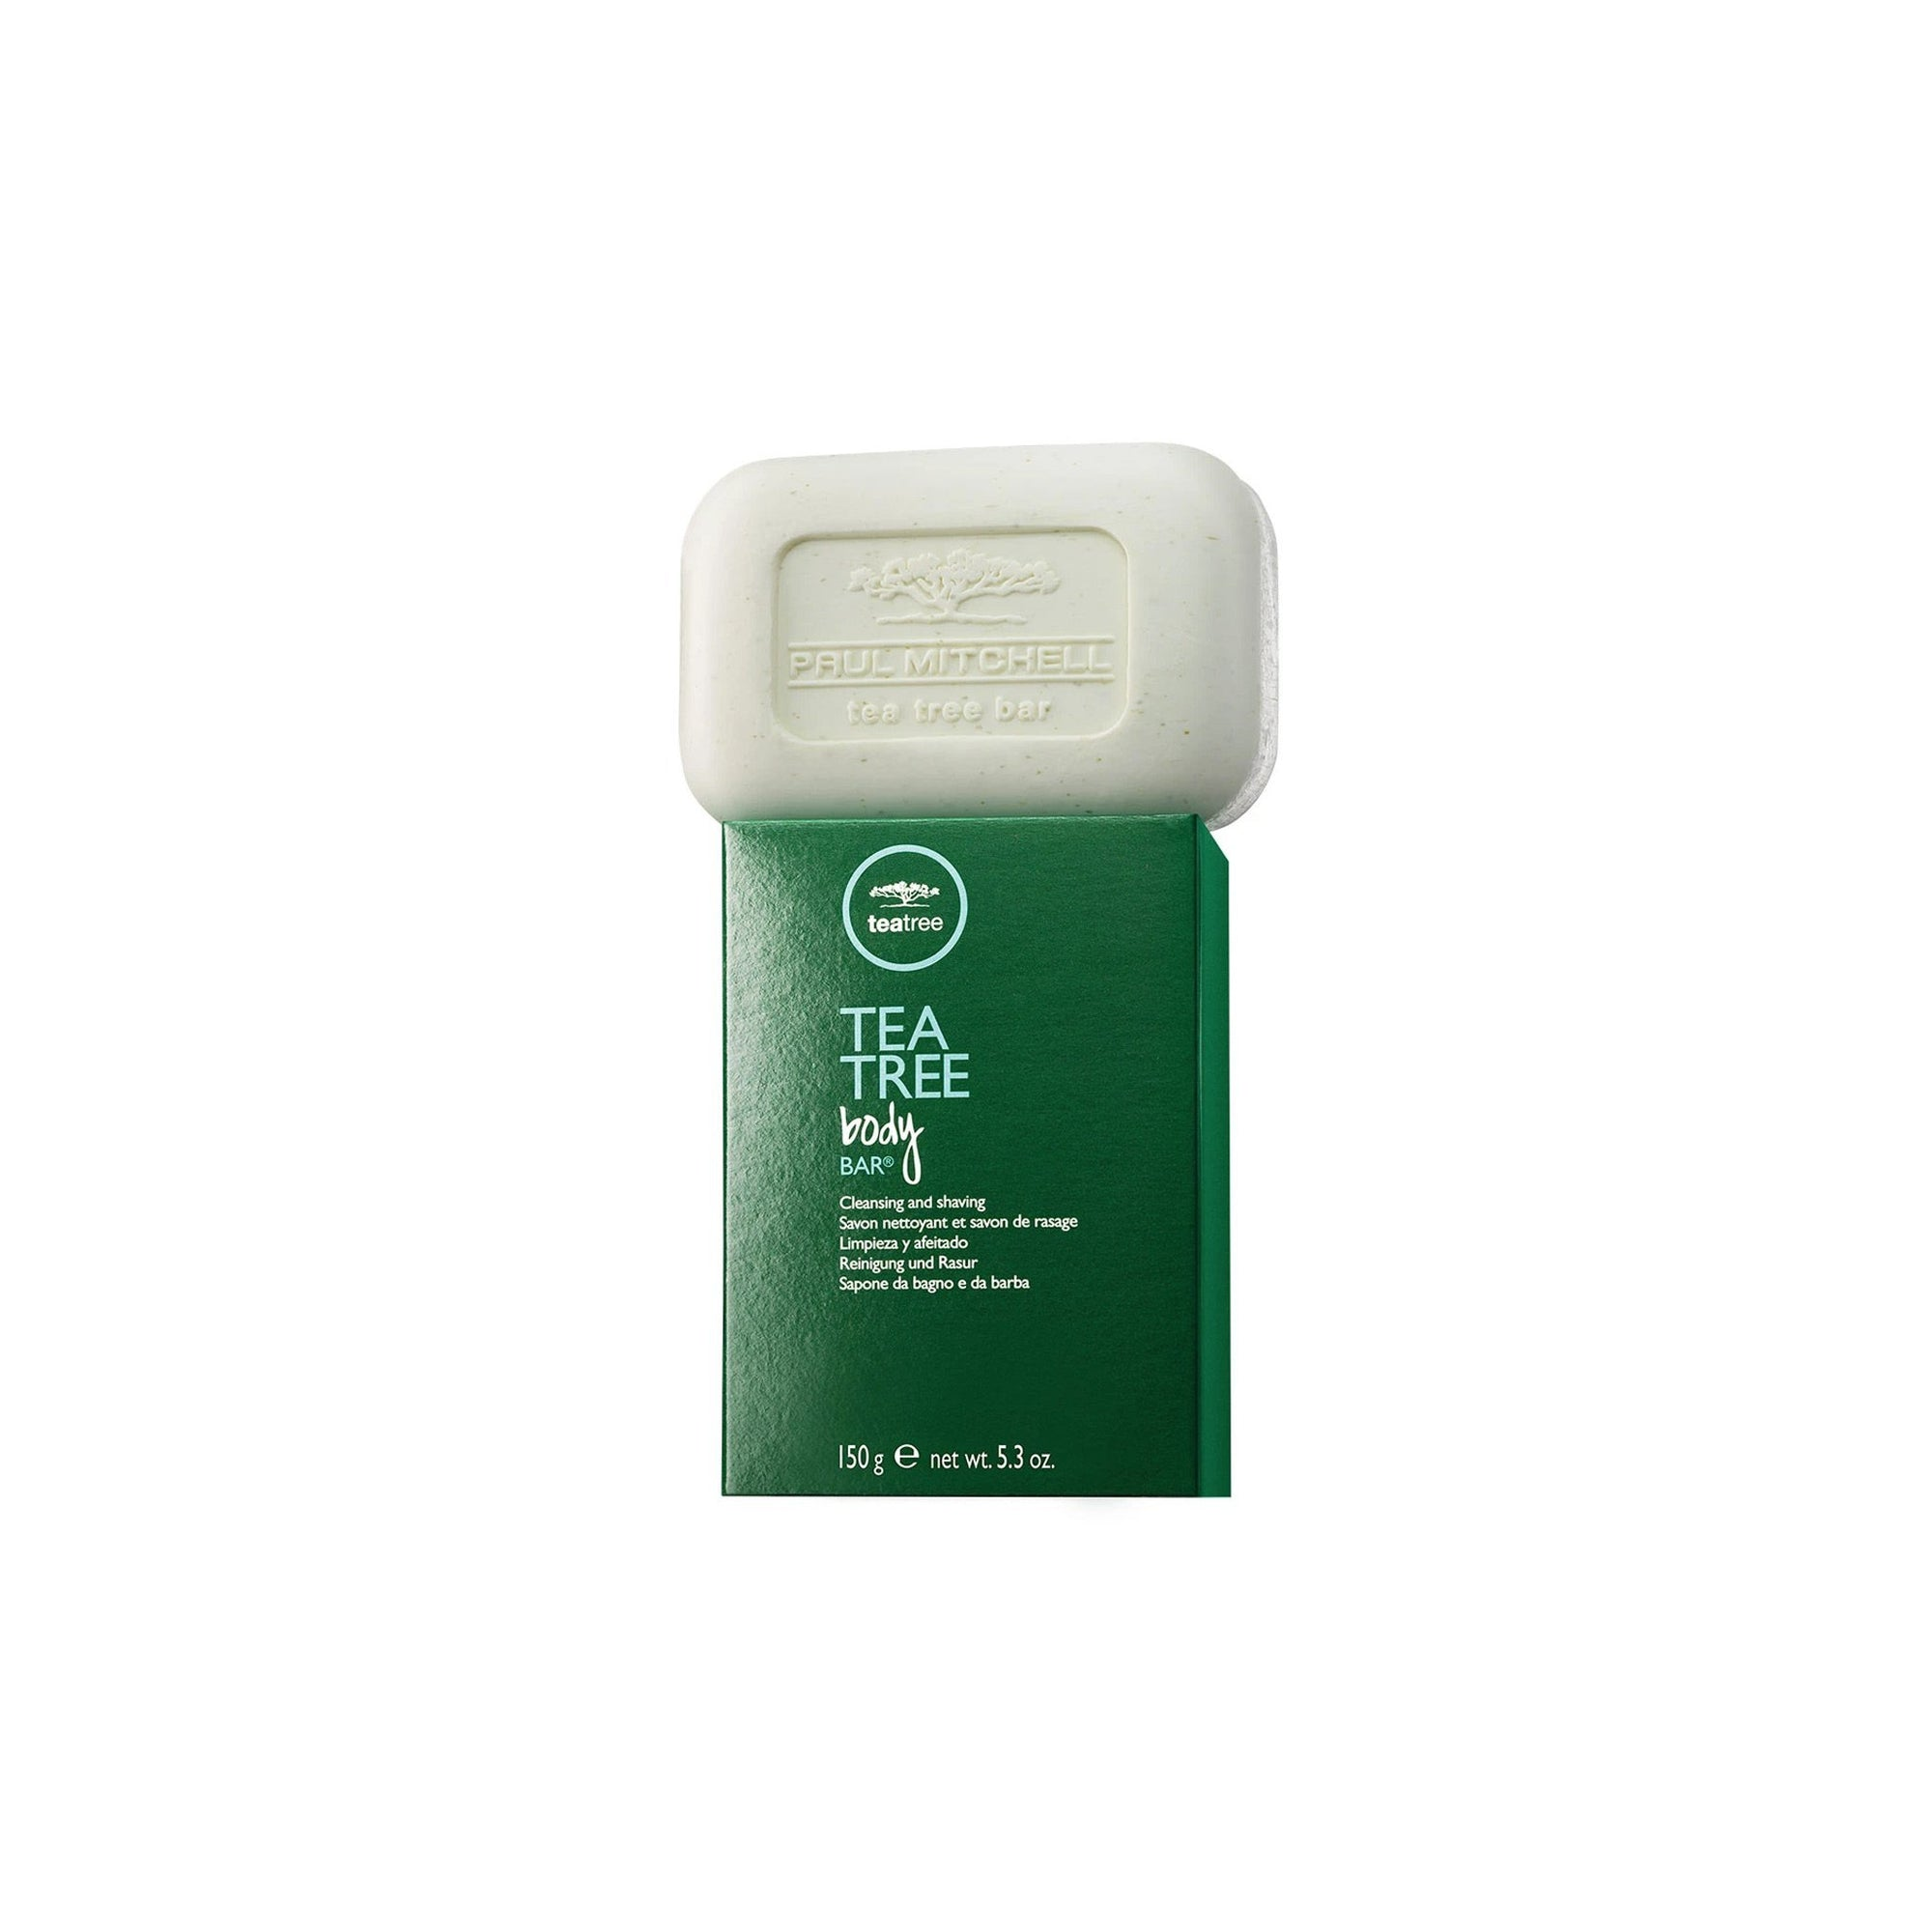 Paul Mitchell Tea Tree Body Bar Cleansing and Shaving